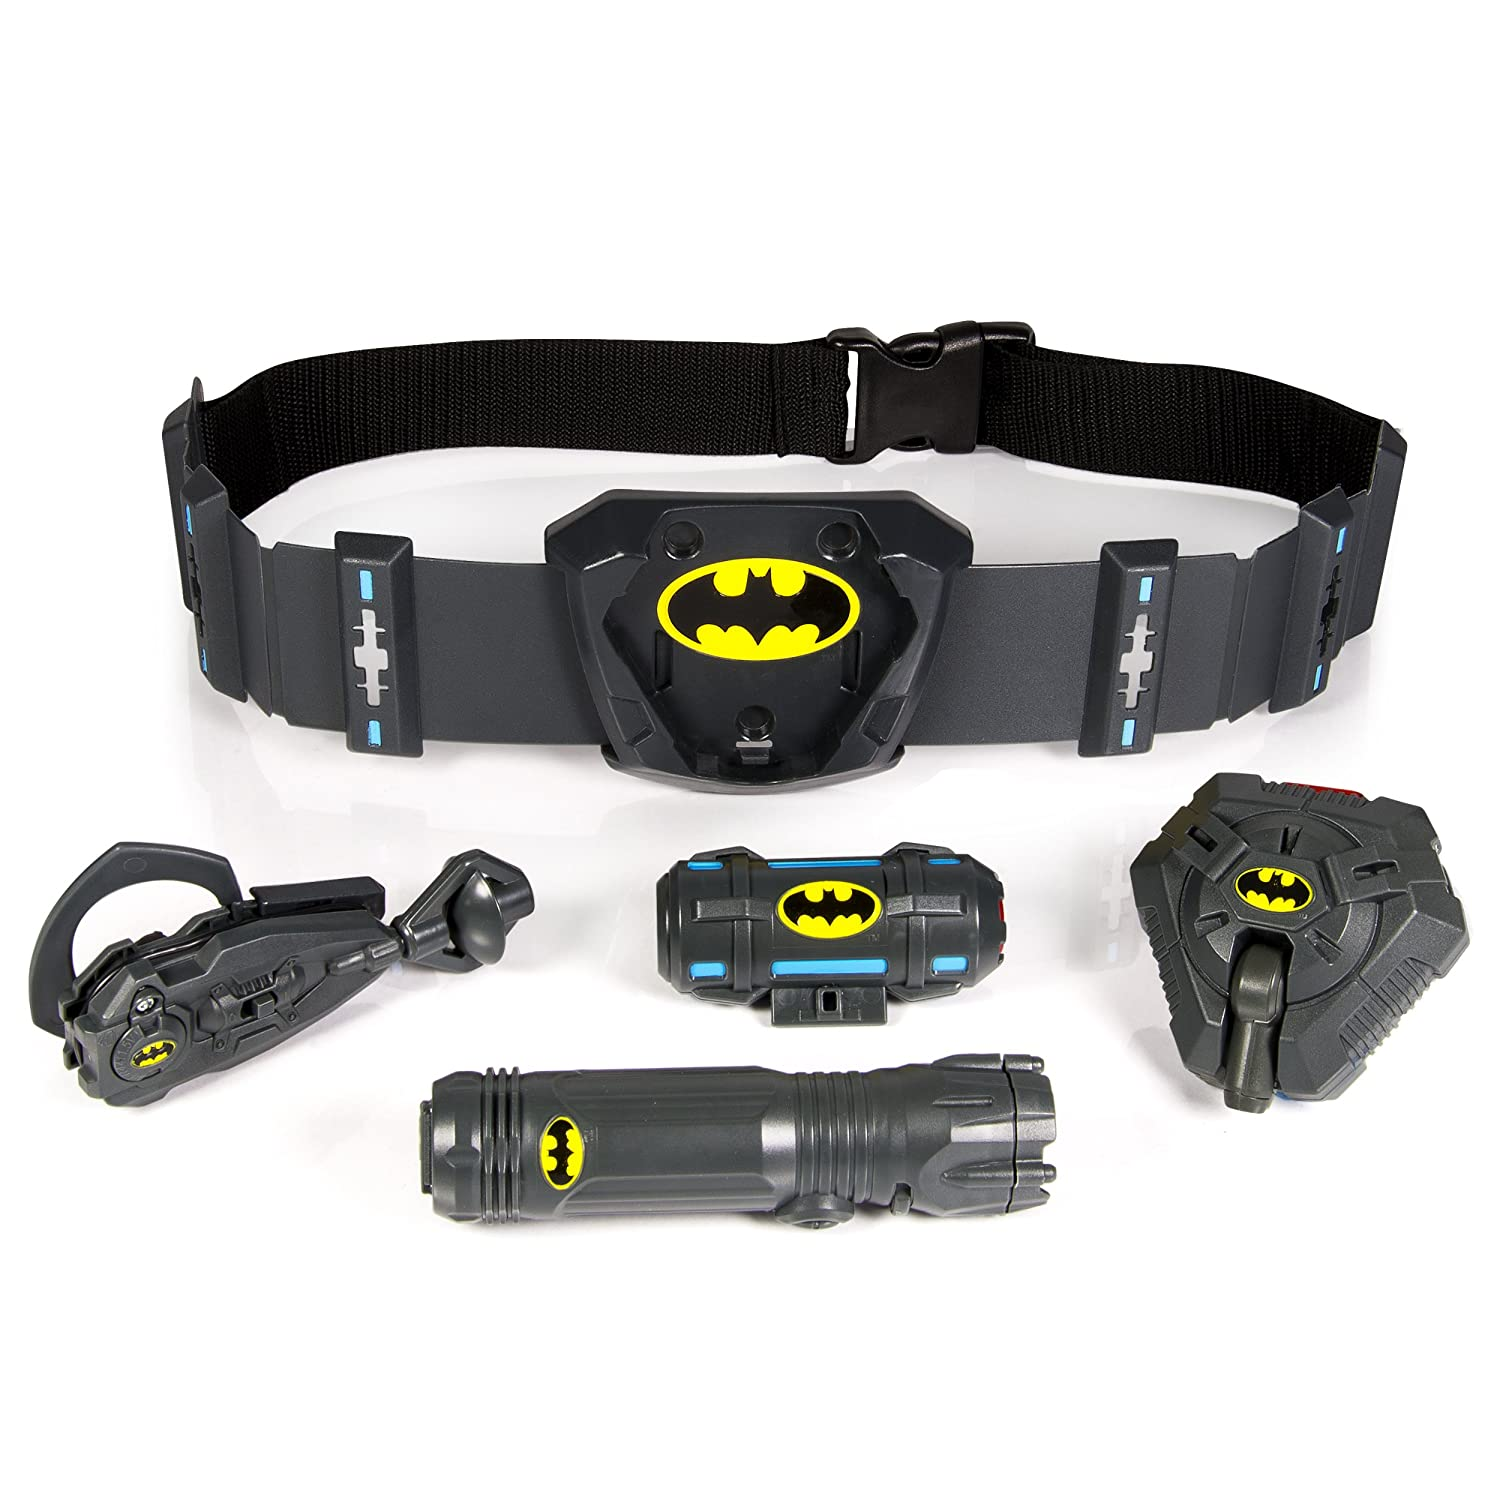 Batman Ultimate Utility Belt Bundle